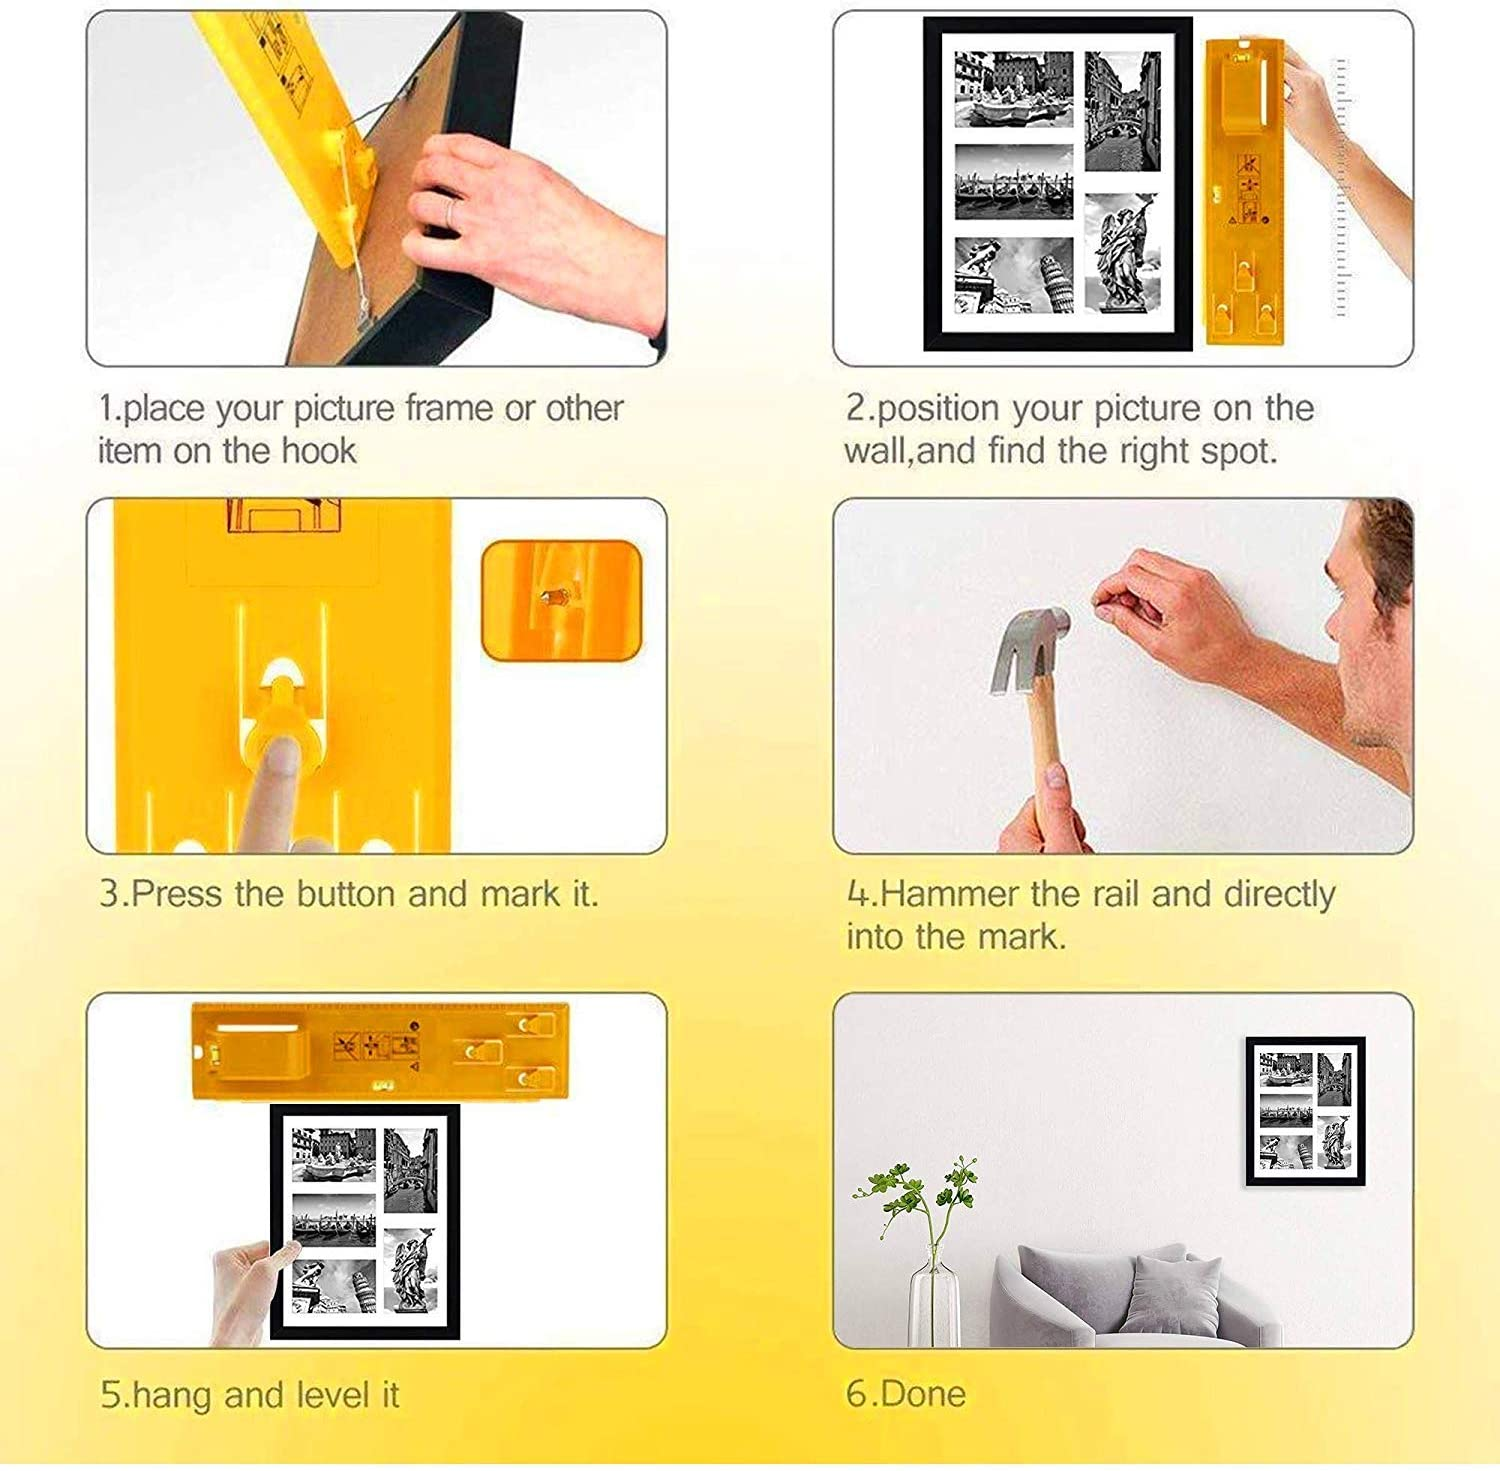 Mirrors and Watches Picture Hanging Tool with Spirit Level Aweohtle Picture Frame Tool for Marking and Measuring Picture Frame Ruler for Marking Position Perfect for Hanging Pictures